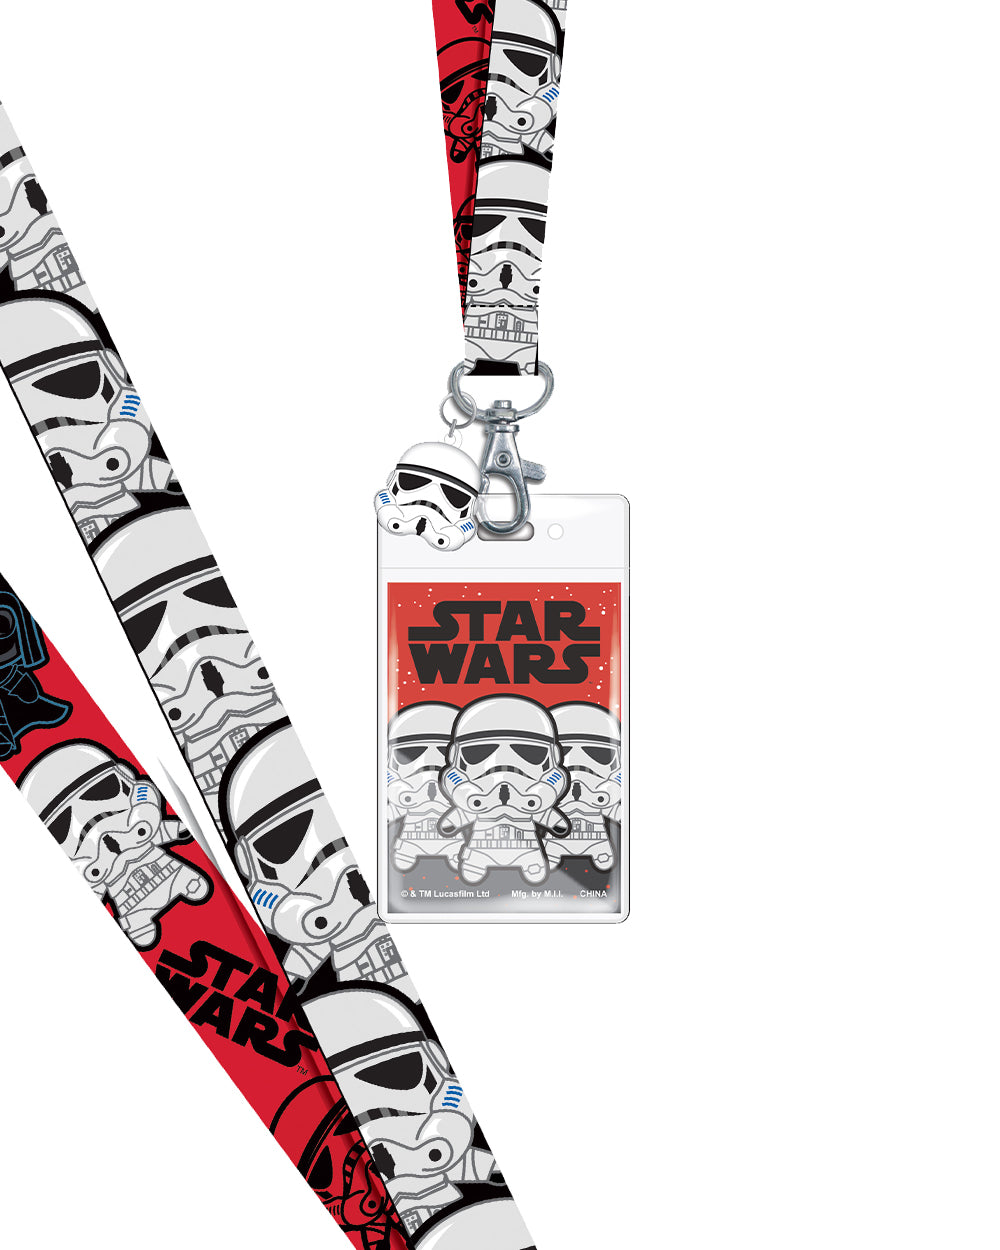 Star Wars Stormtroopers Lanyard - The Pink a la Mode - Monogram - The Pink a la Mode